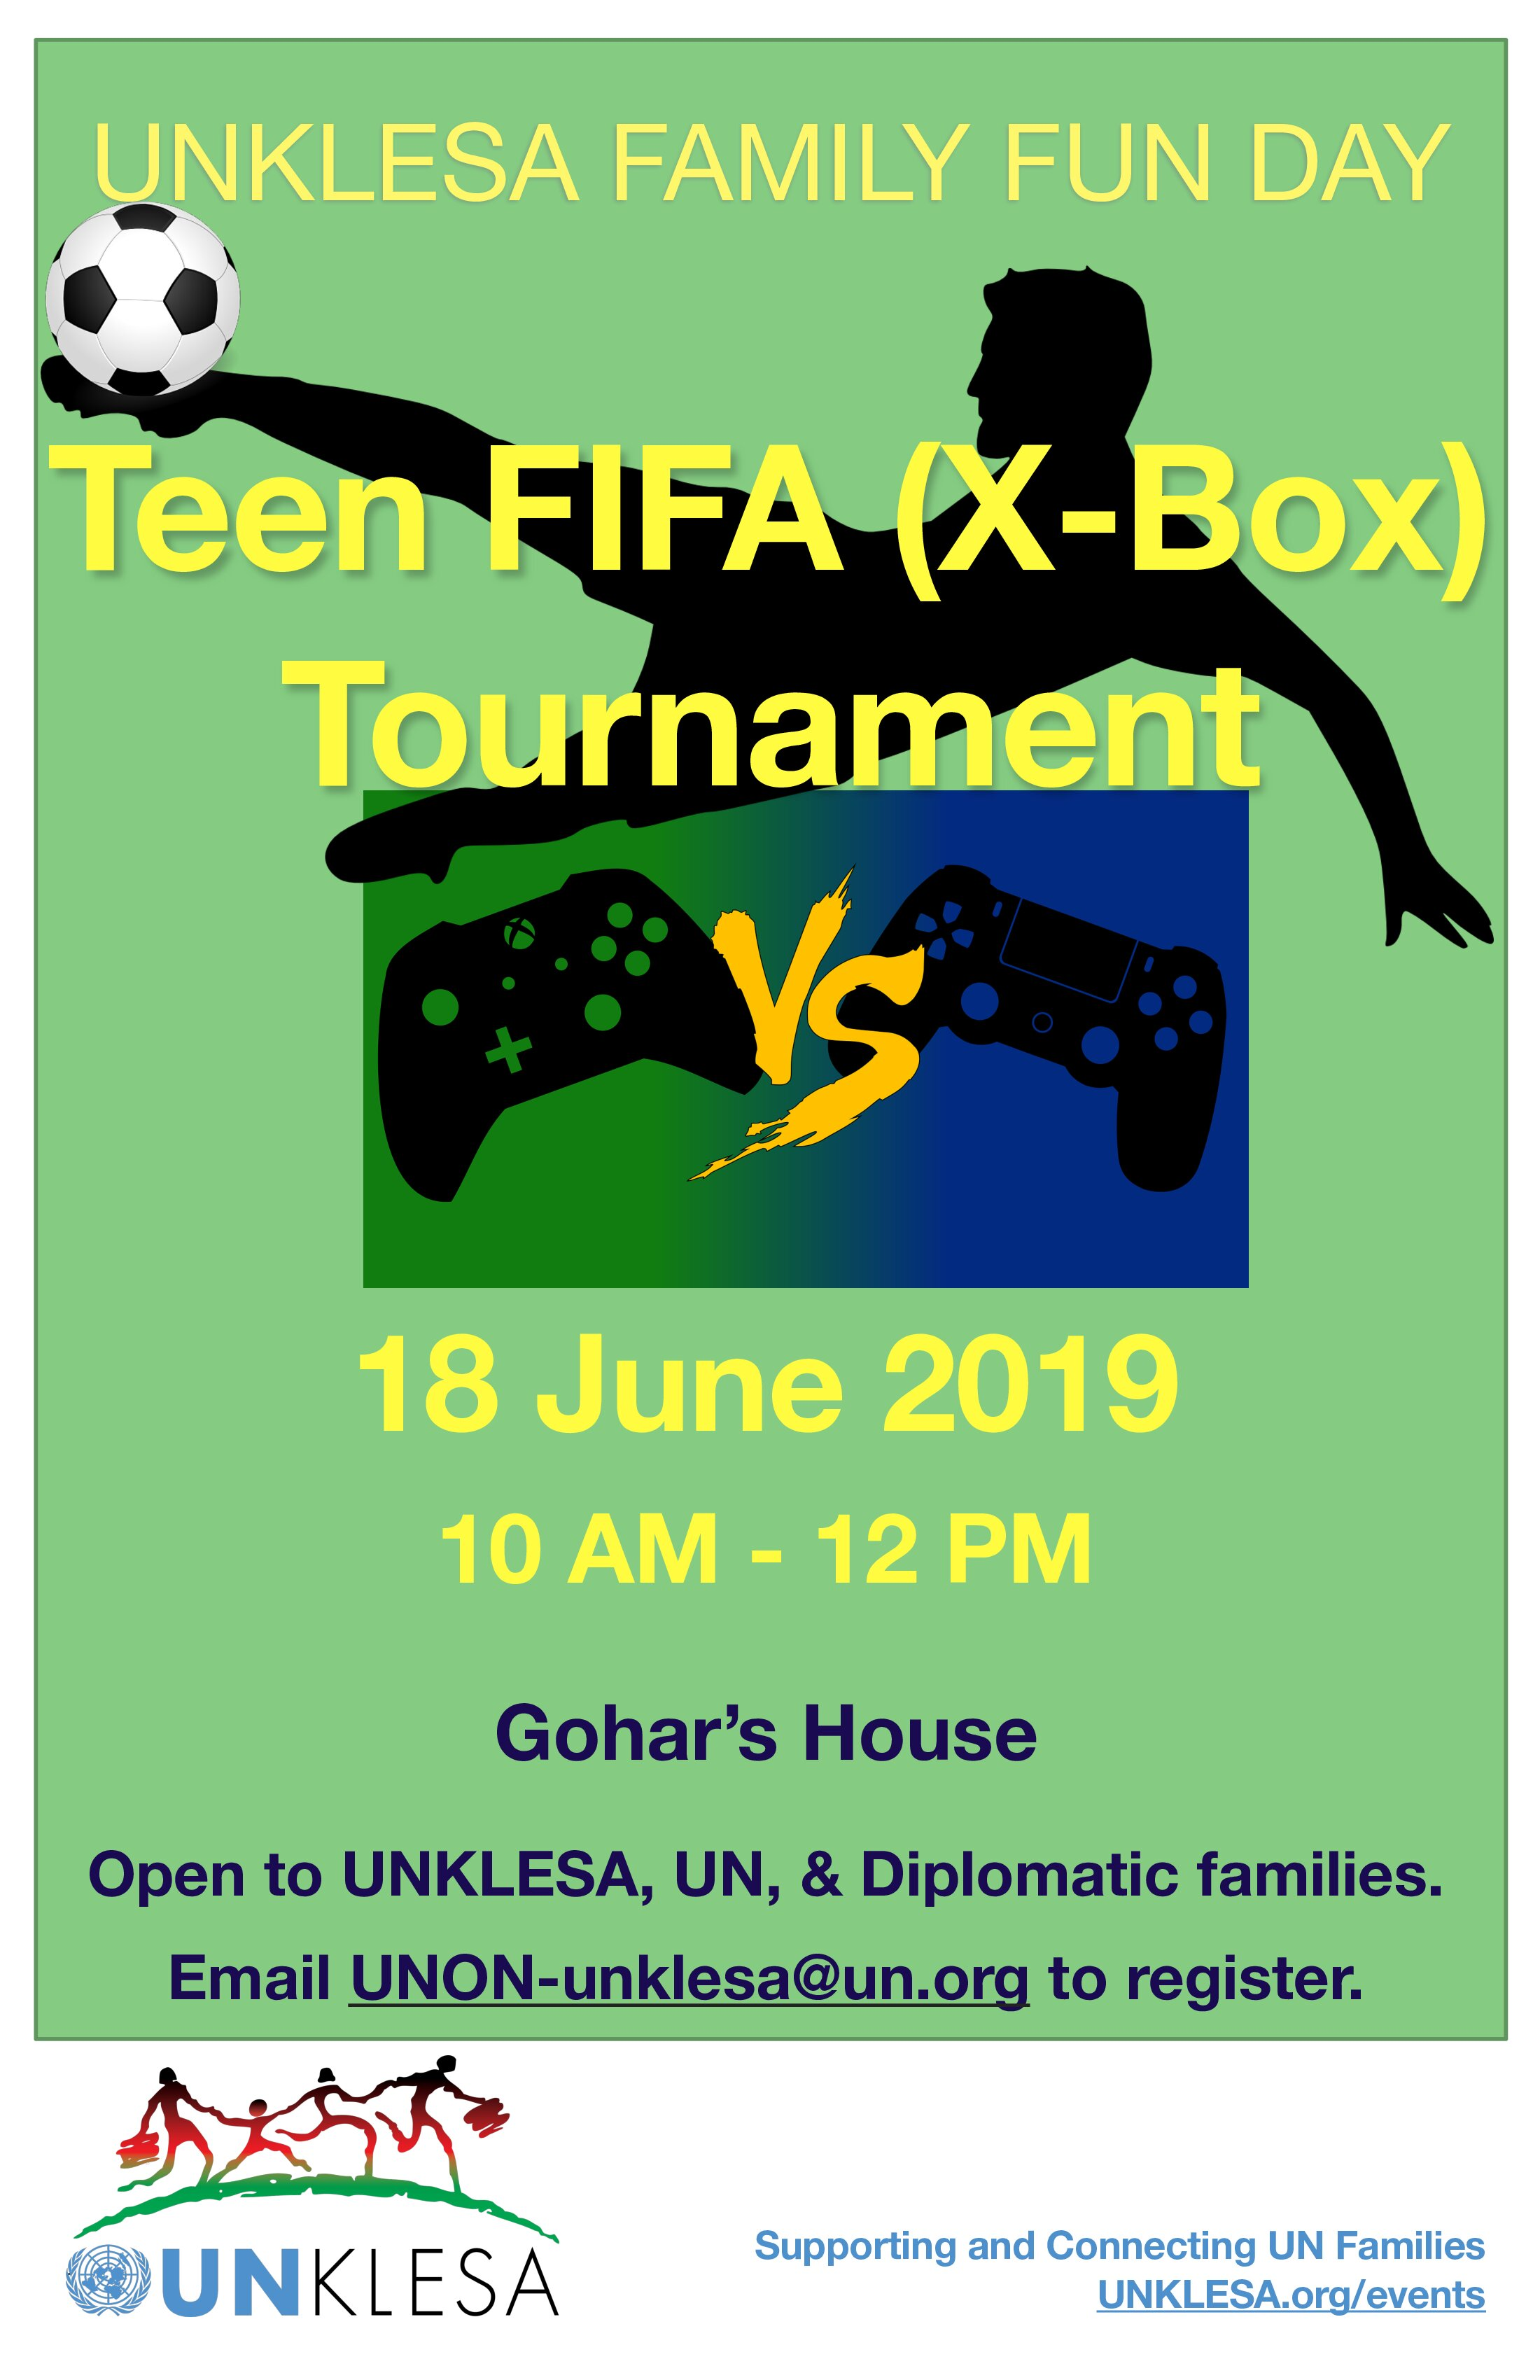 UNKLESA Family Fun_TeensFIFA_June2019-1.jpg